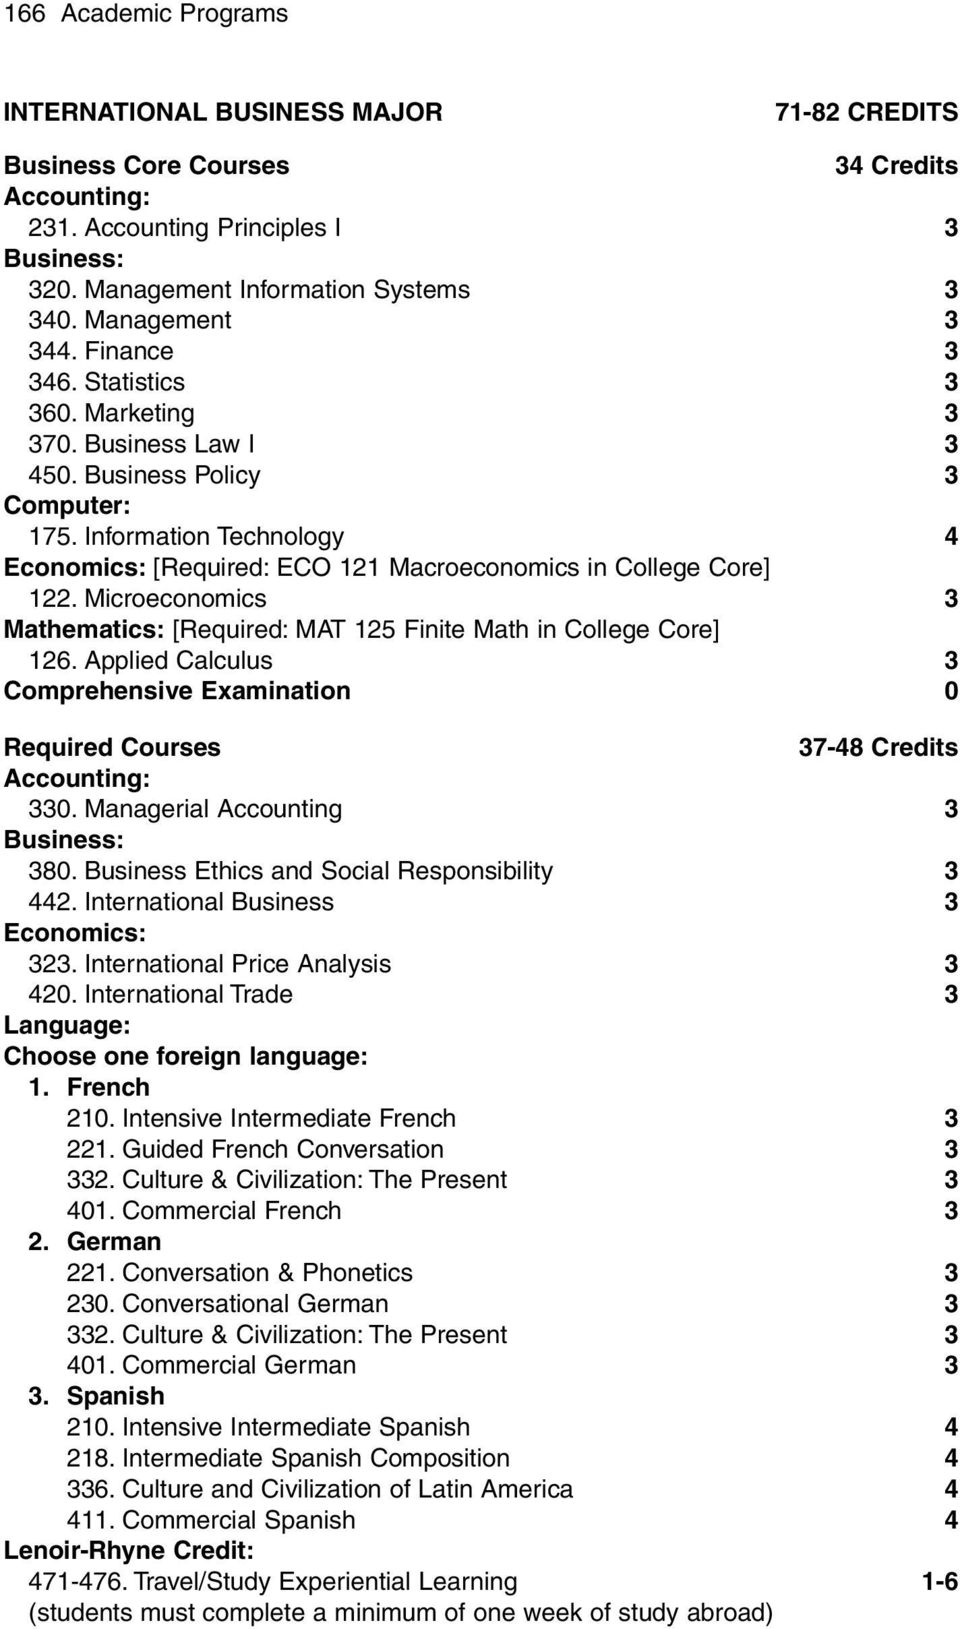 Information Technology 4 [Required: ECO 121 Macroeconomics in College Core] Mathematics: [Required: MAT 125 Finite Math in College Core] Comprehensive Examination 0 Required Courses 37-48 Credits 330.